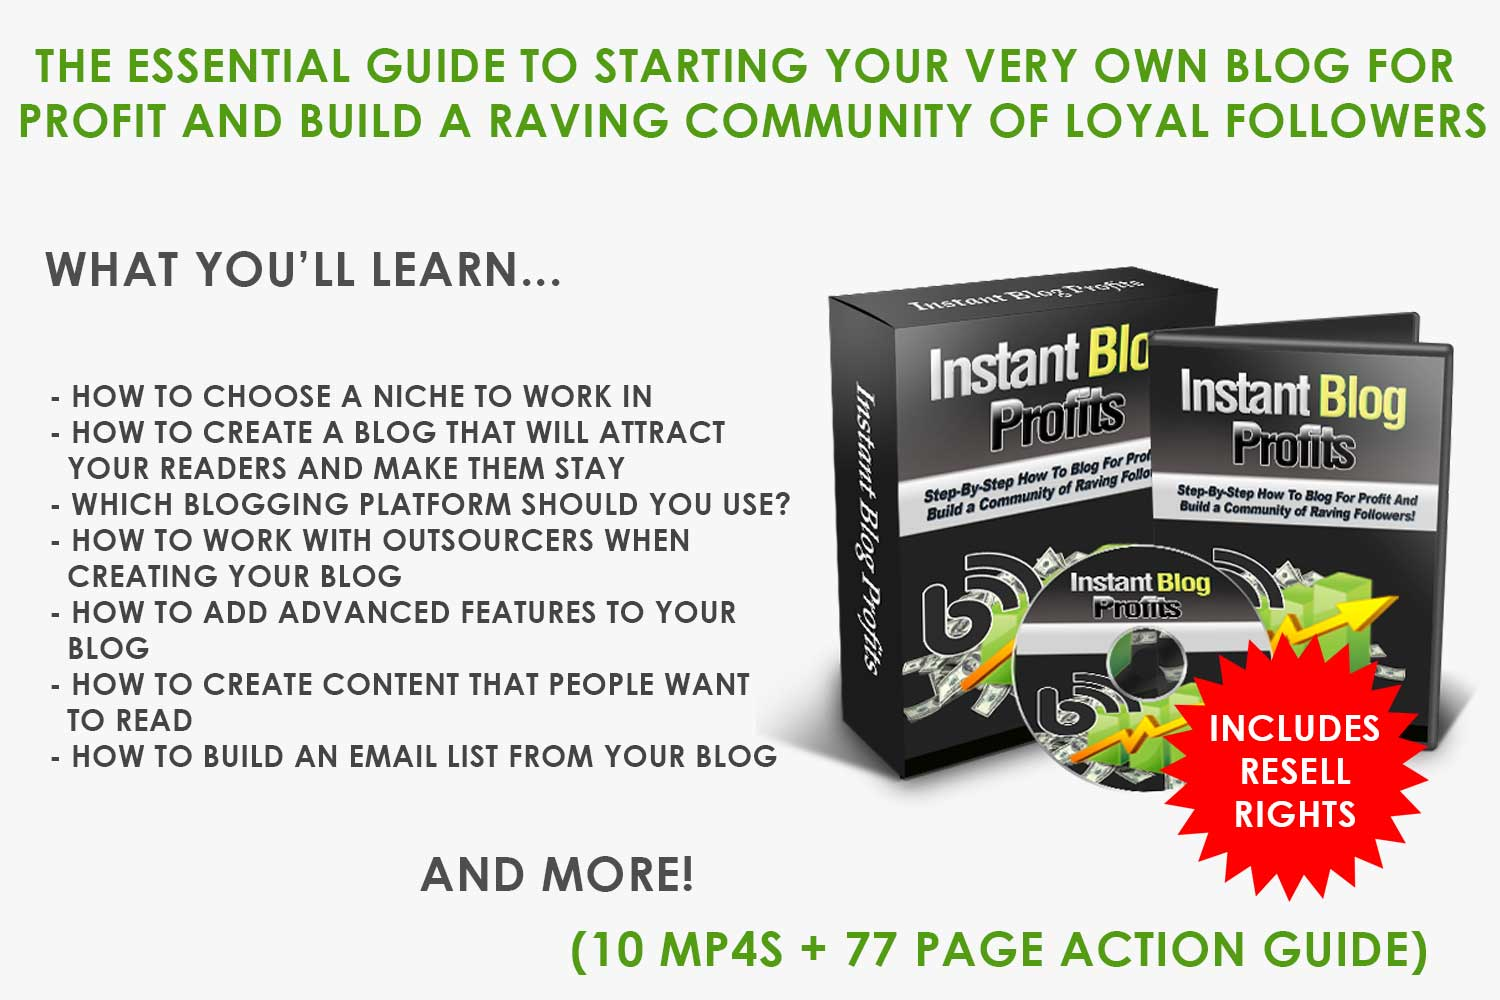 How to Get Instant Blogging Profits